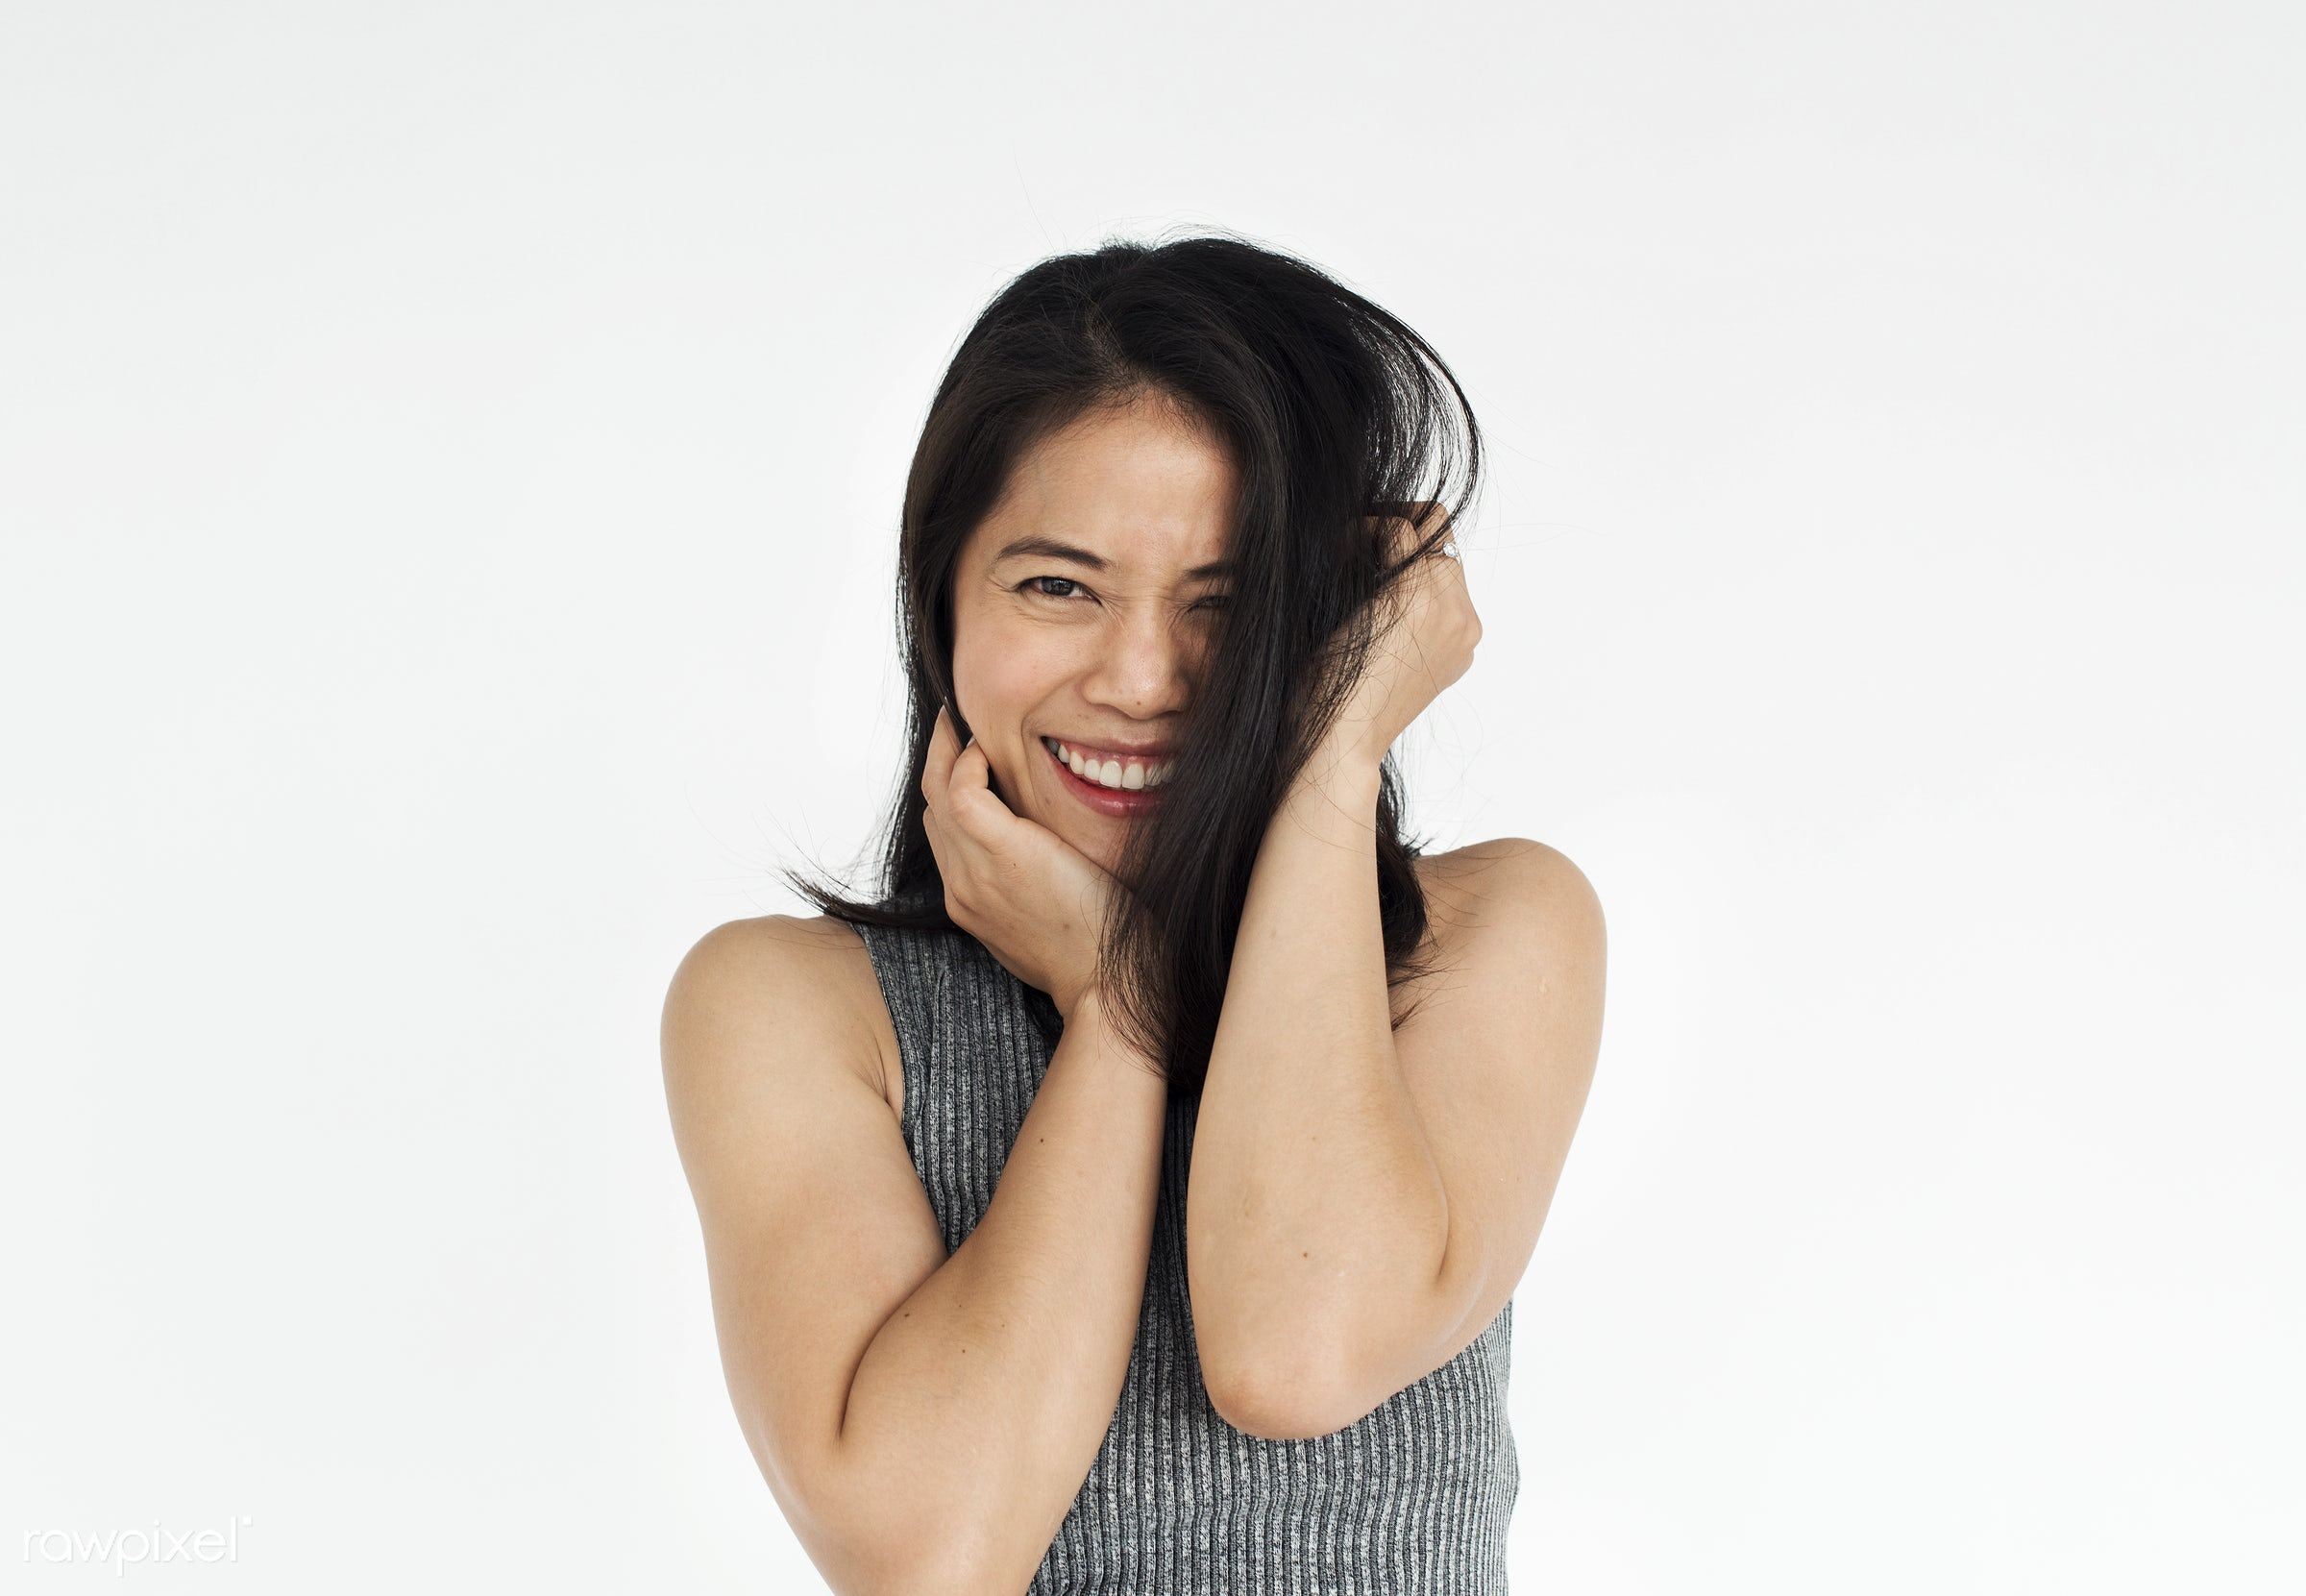 Studio portrait of an Asian woman - expression, studio, person, people, woman, cheerful, smiling, isolated, white, happiness...